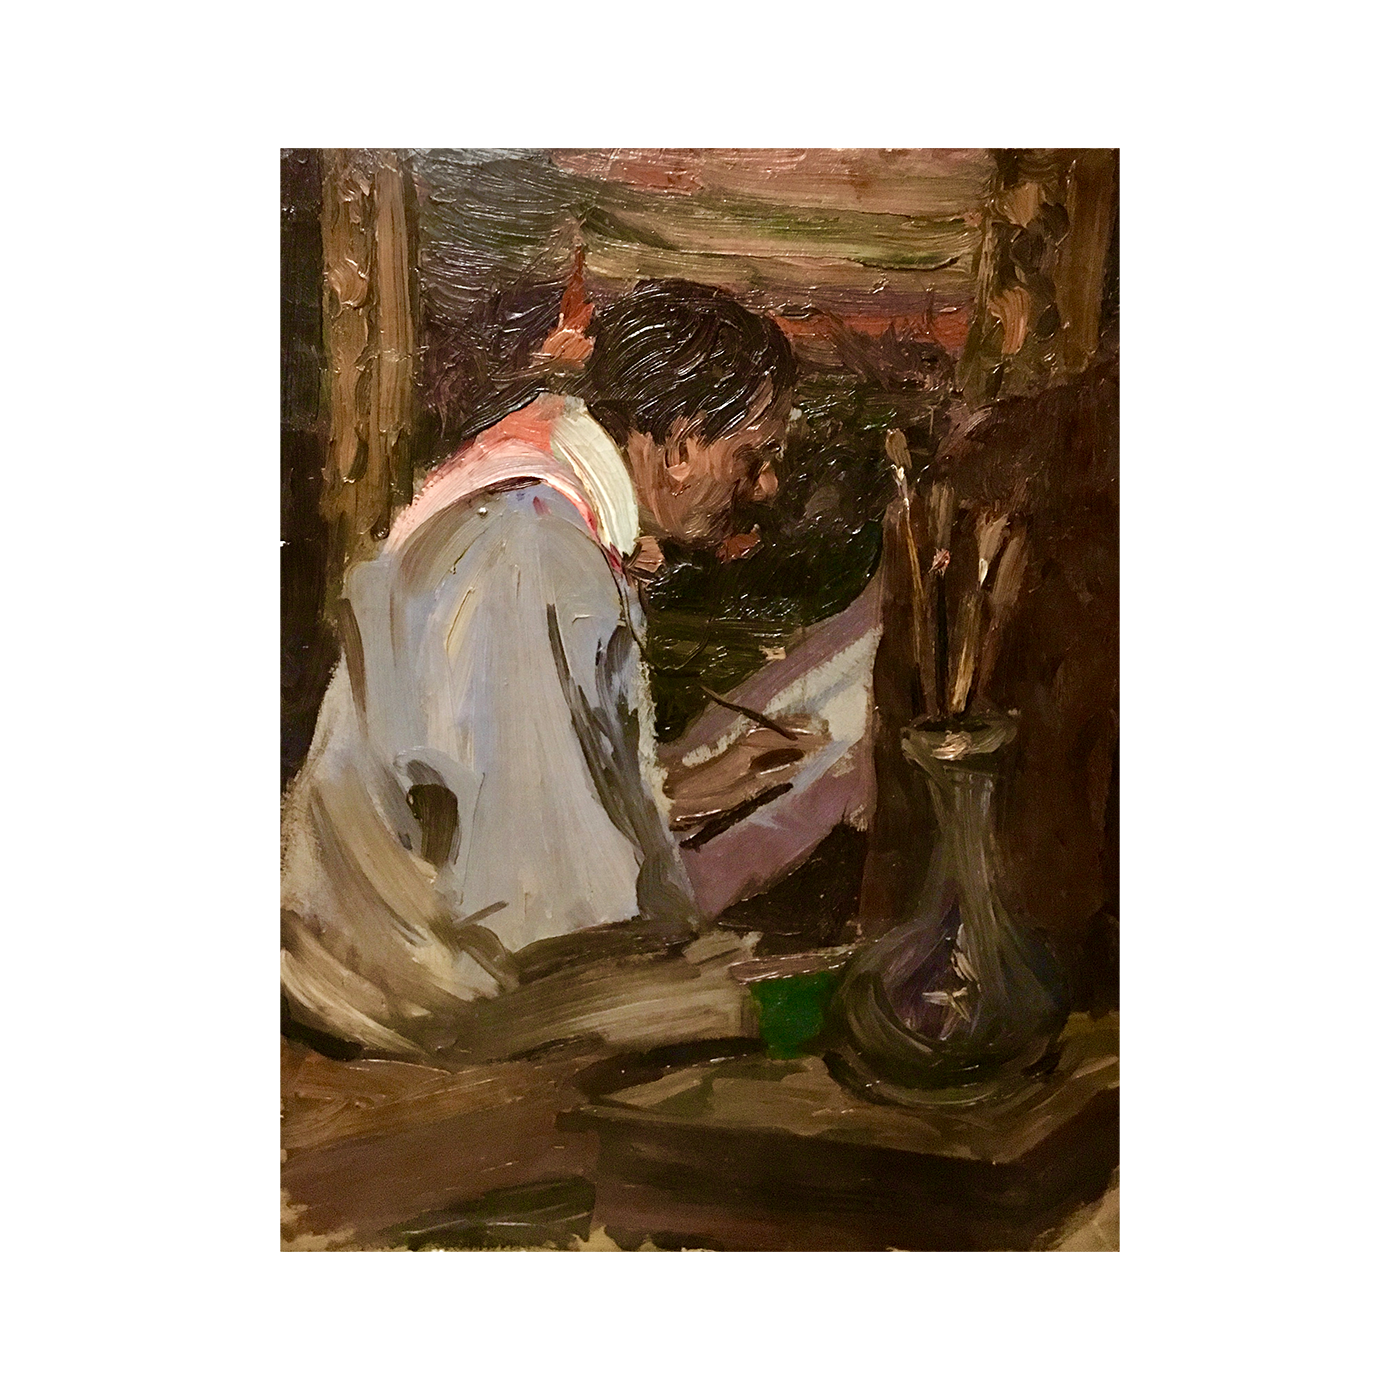 [unattributed] American School Artist at work ,ca.1900 oil on canvas 16 x 13 inches signed illegibly lower left from the Estate of artist Charles Graham